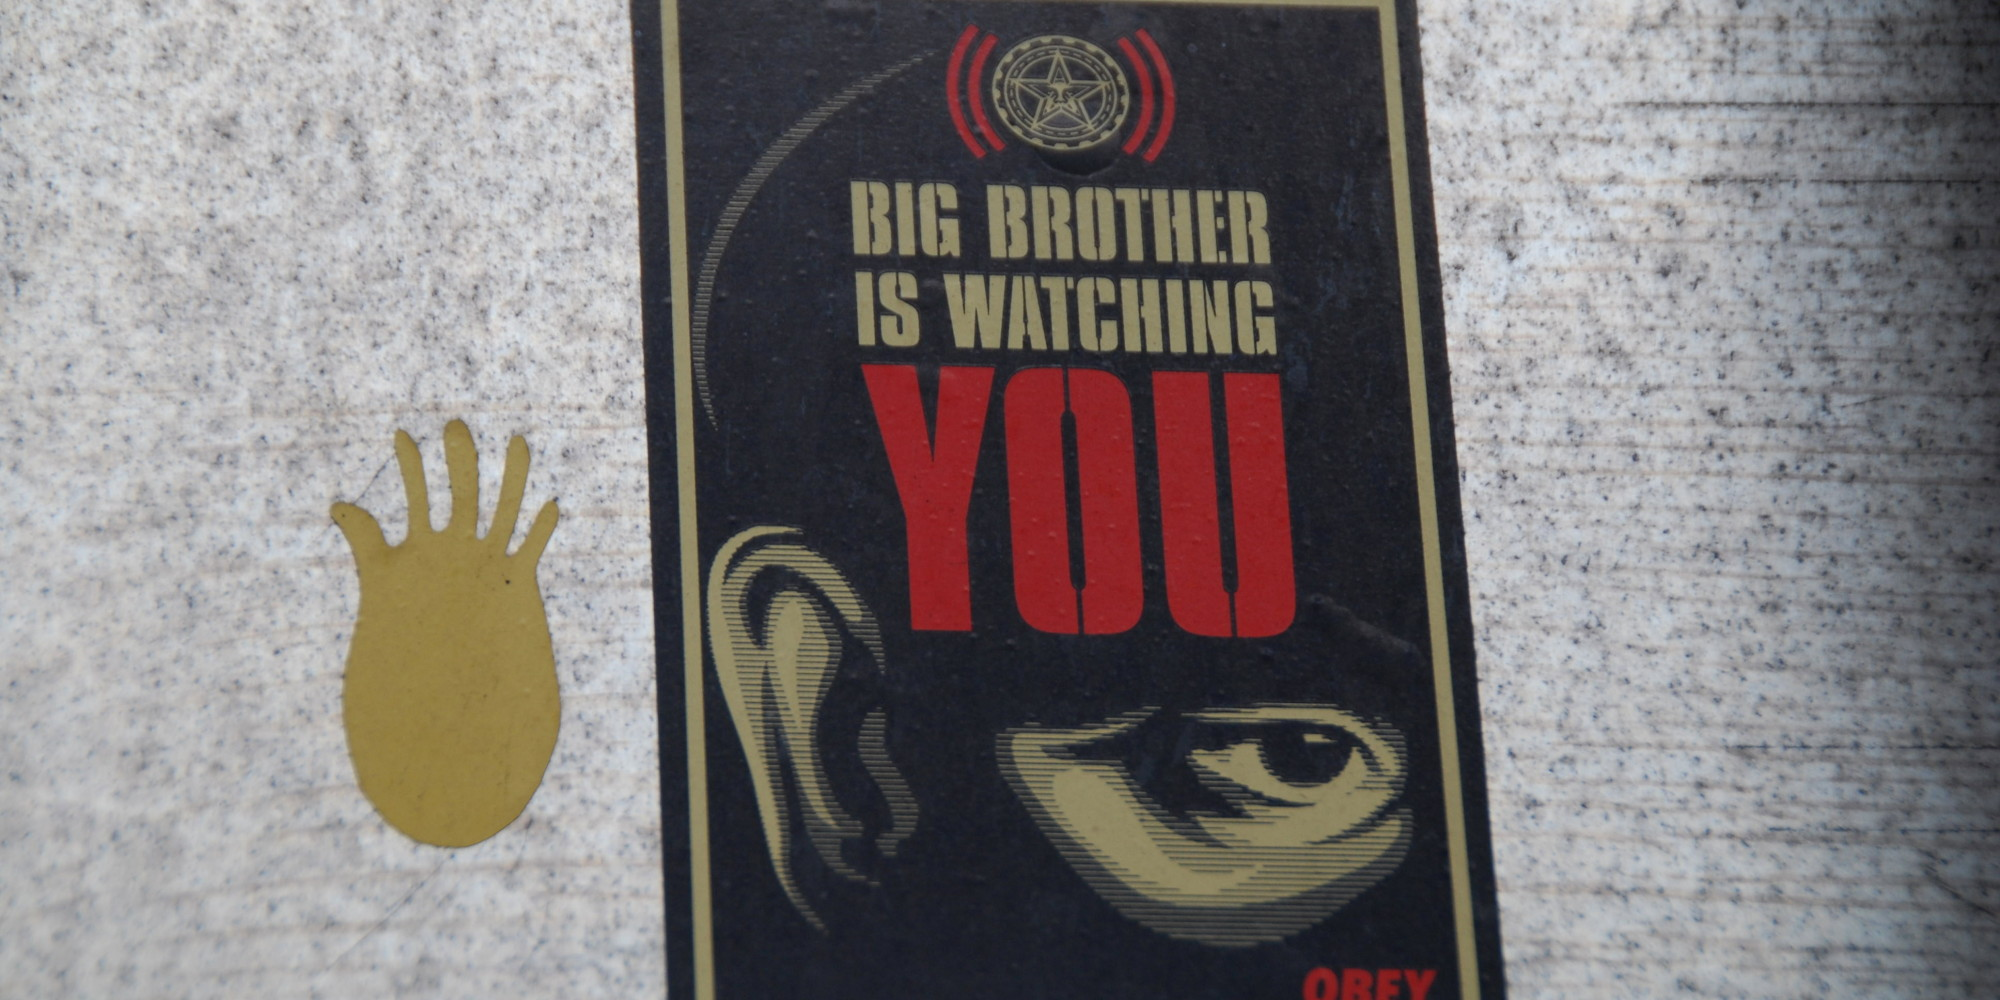 big brothers worst nightmare in 1984 a novel by george orwell 1984 by george orwell, erich fromm available in mass market on  of rebellion  and imprisonment, where war is peace, freedom is slavery, and big brother   the story of one man's nightmare odyssey as he pursues a forbidden love affair   ever before, 1984 exposes the worst crimes imaginable — the destruction of  truth,.